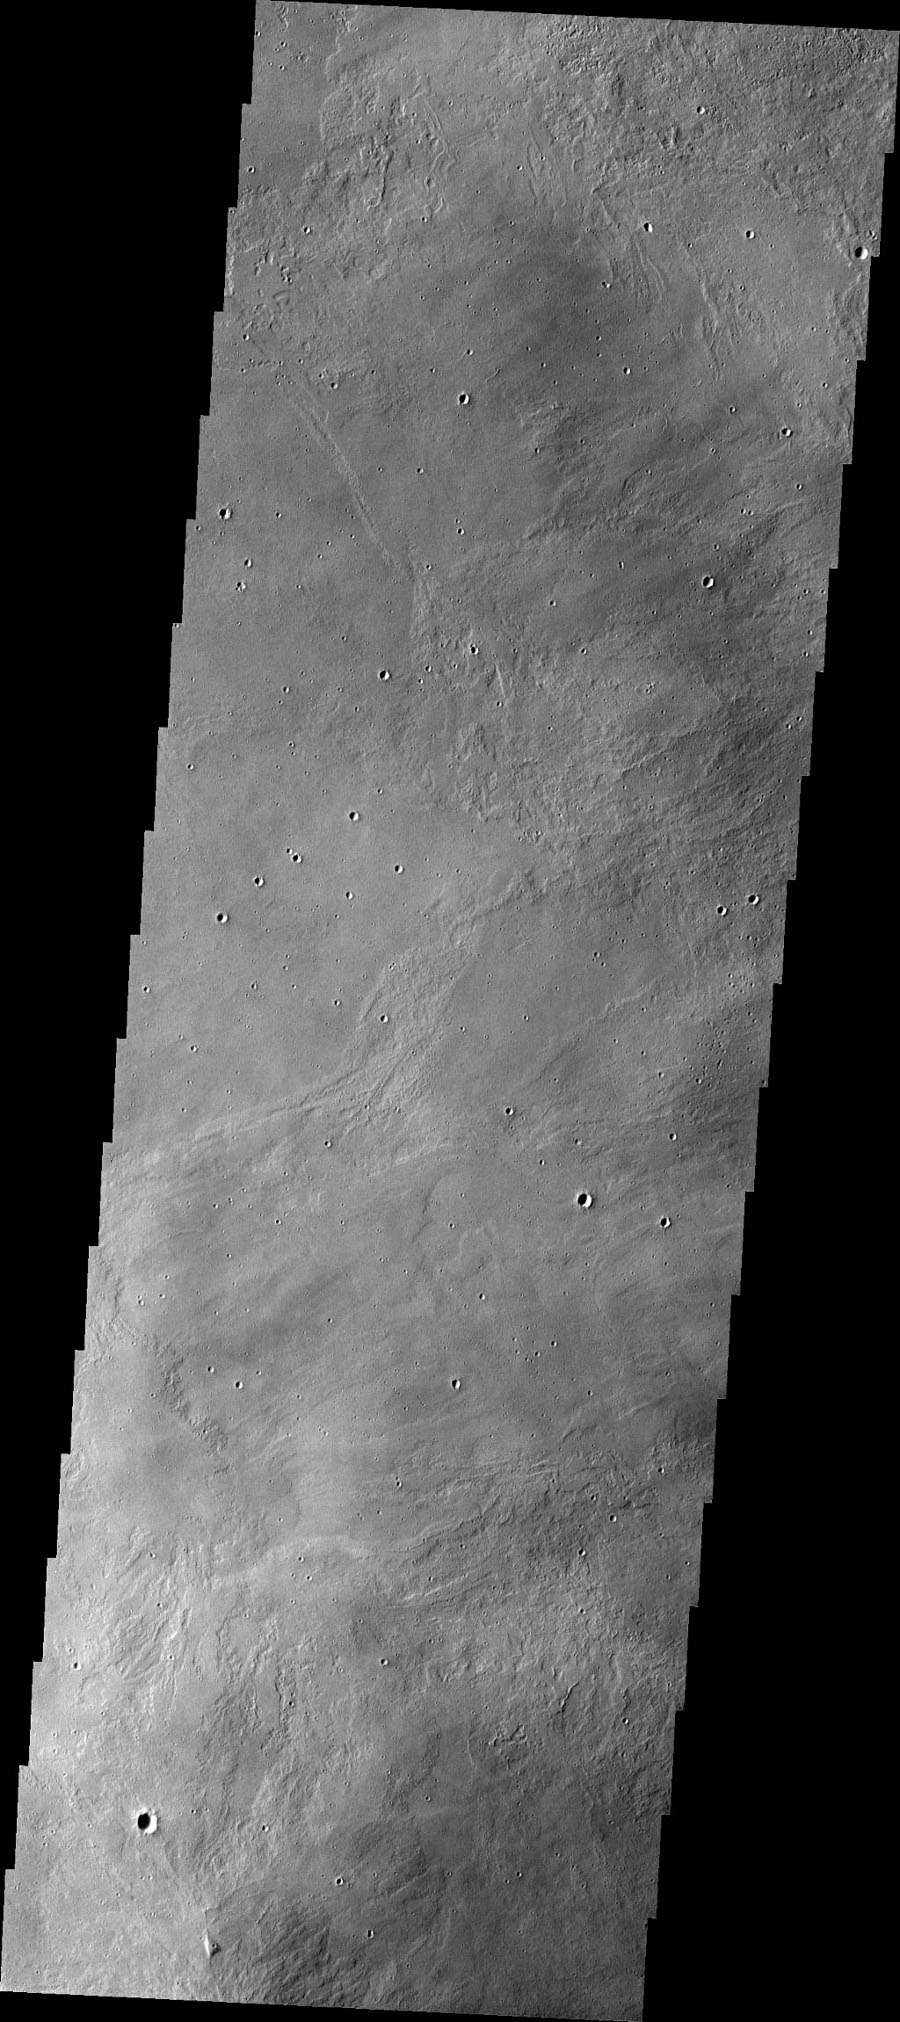 This image from NASA's 2001 Mars Odyssey spacecraft shows part of the caldera floor of Arsia Mons. It is not uncommon for calderas to have 'flat' floors after the final explosive eruption that empties the subsurface magma chamber.